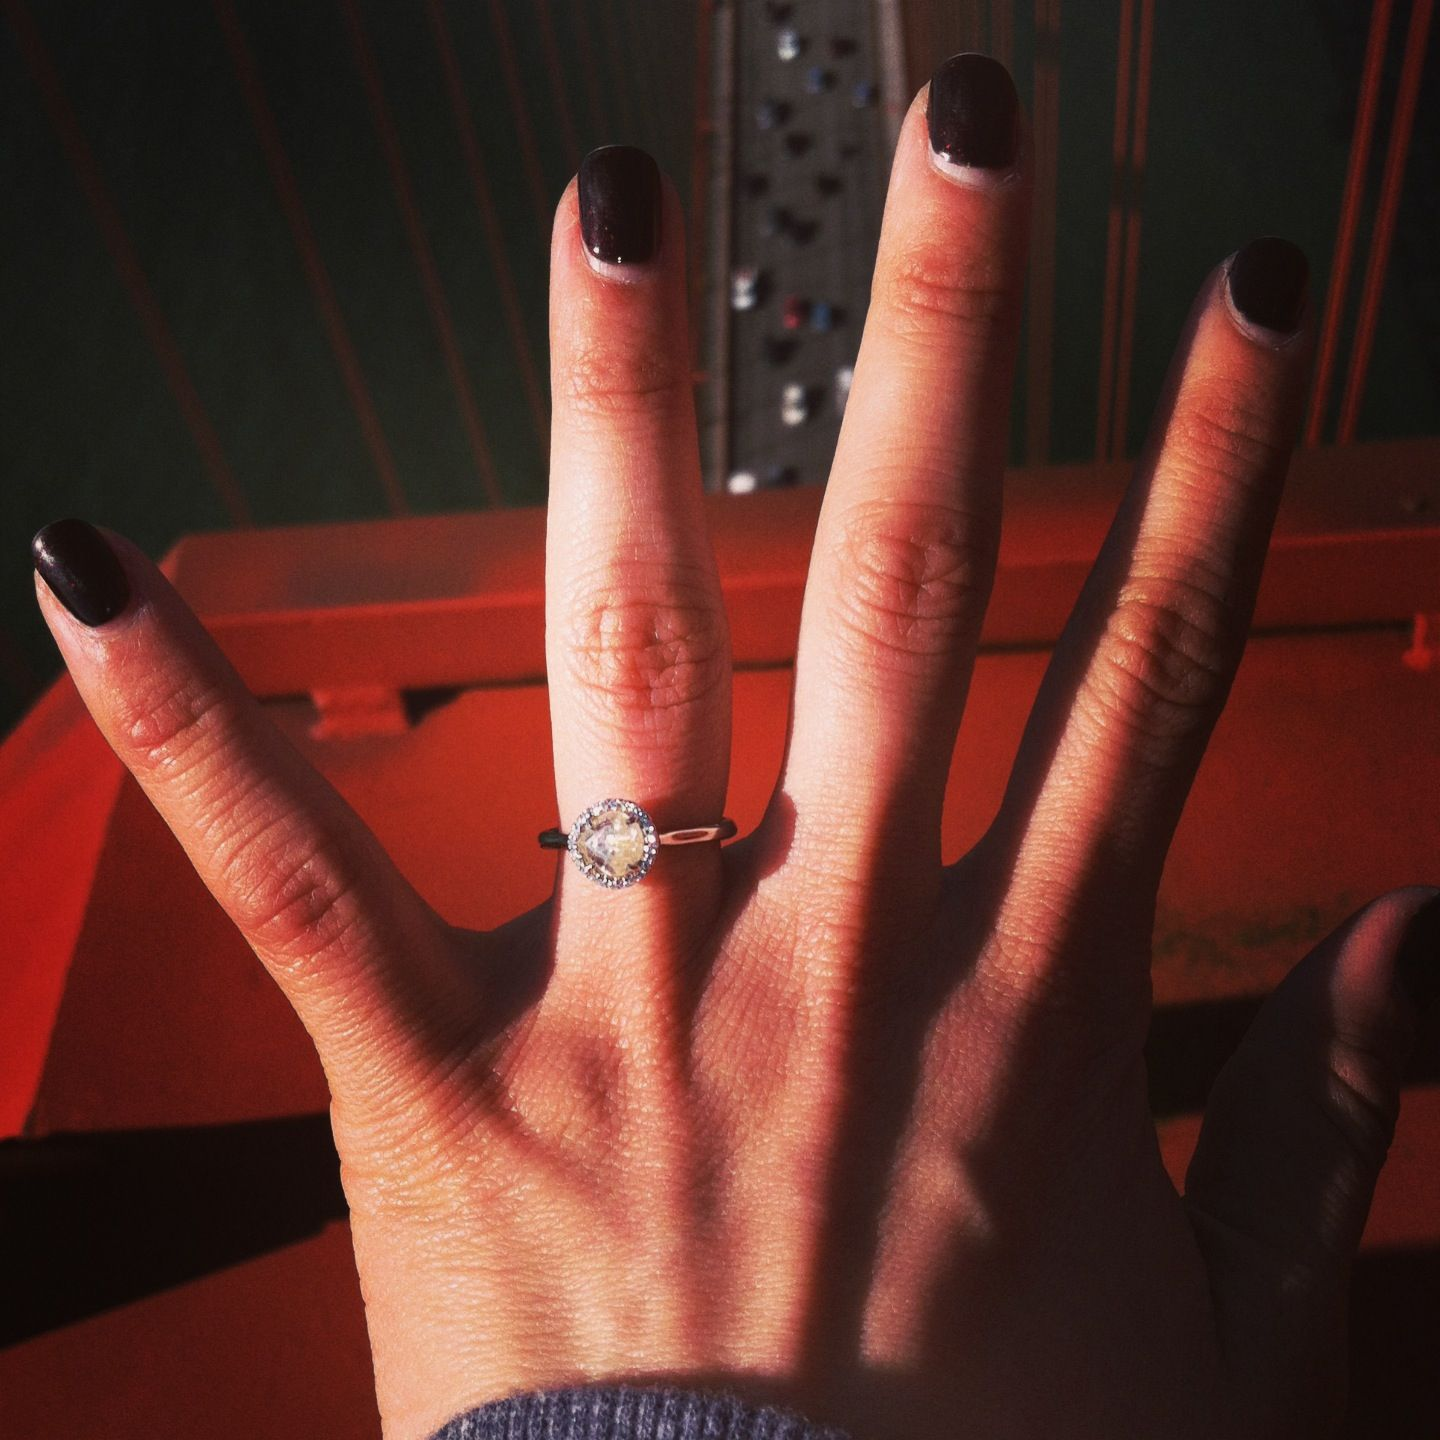 Engaged! Top of the Golden Gate Bridge! #diamondintherough